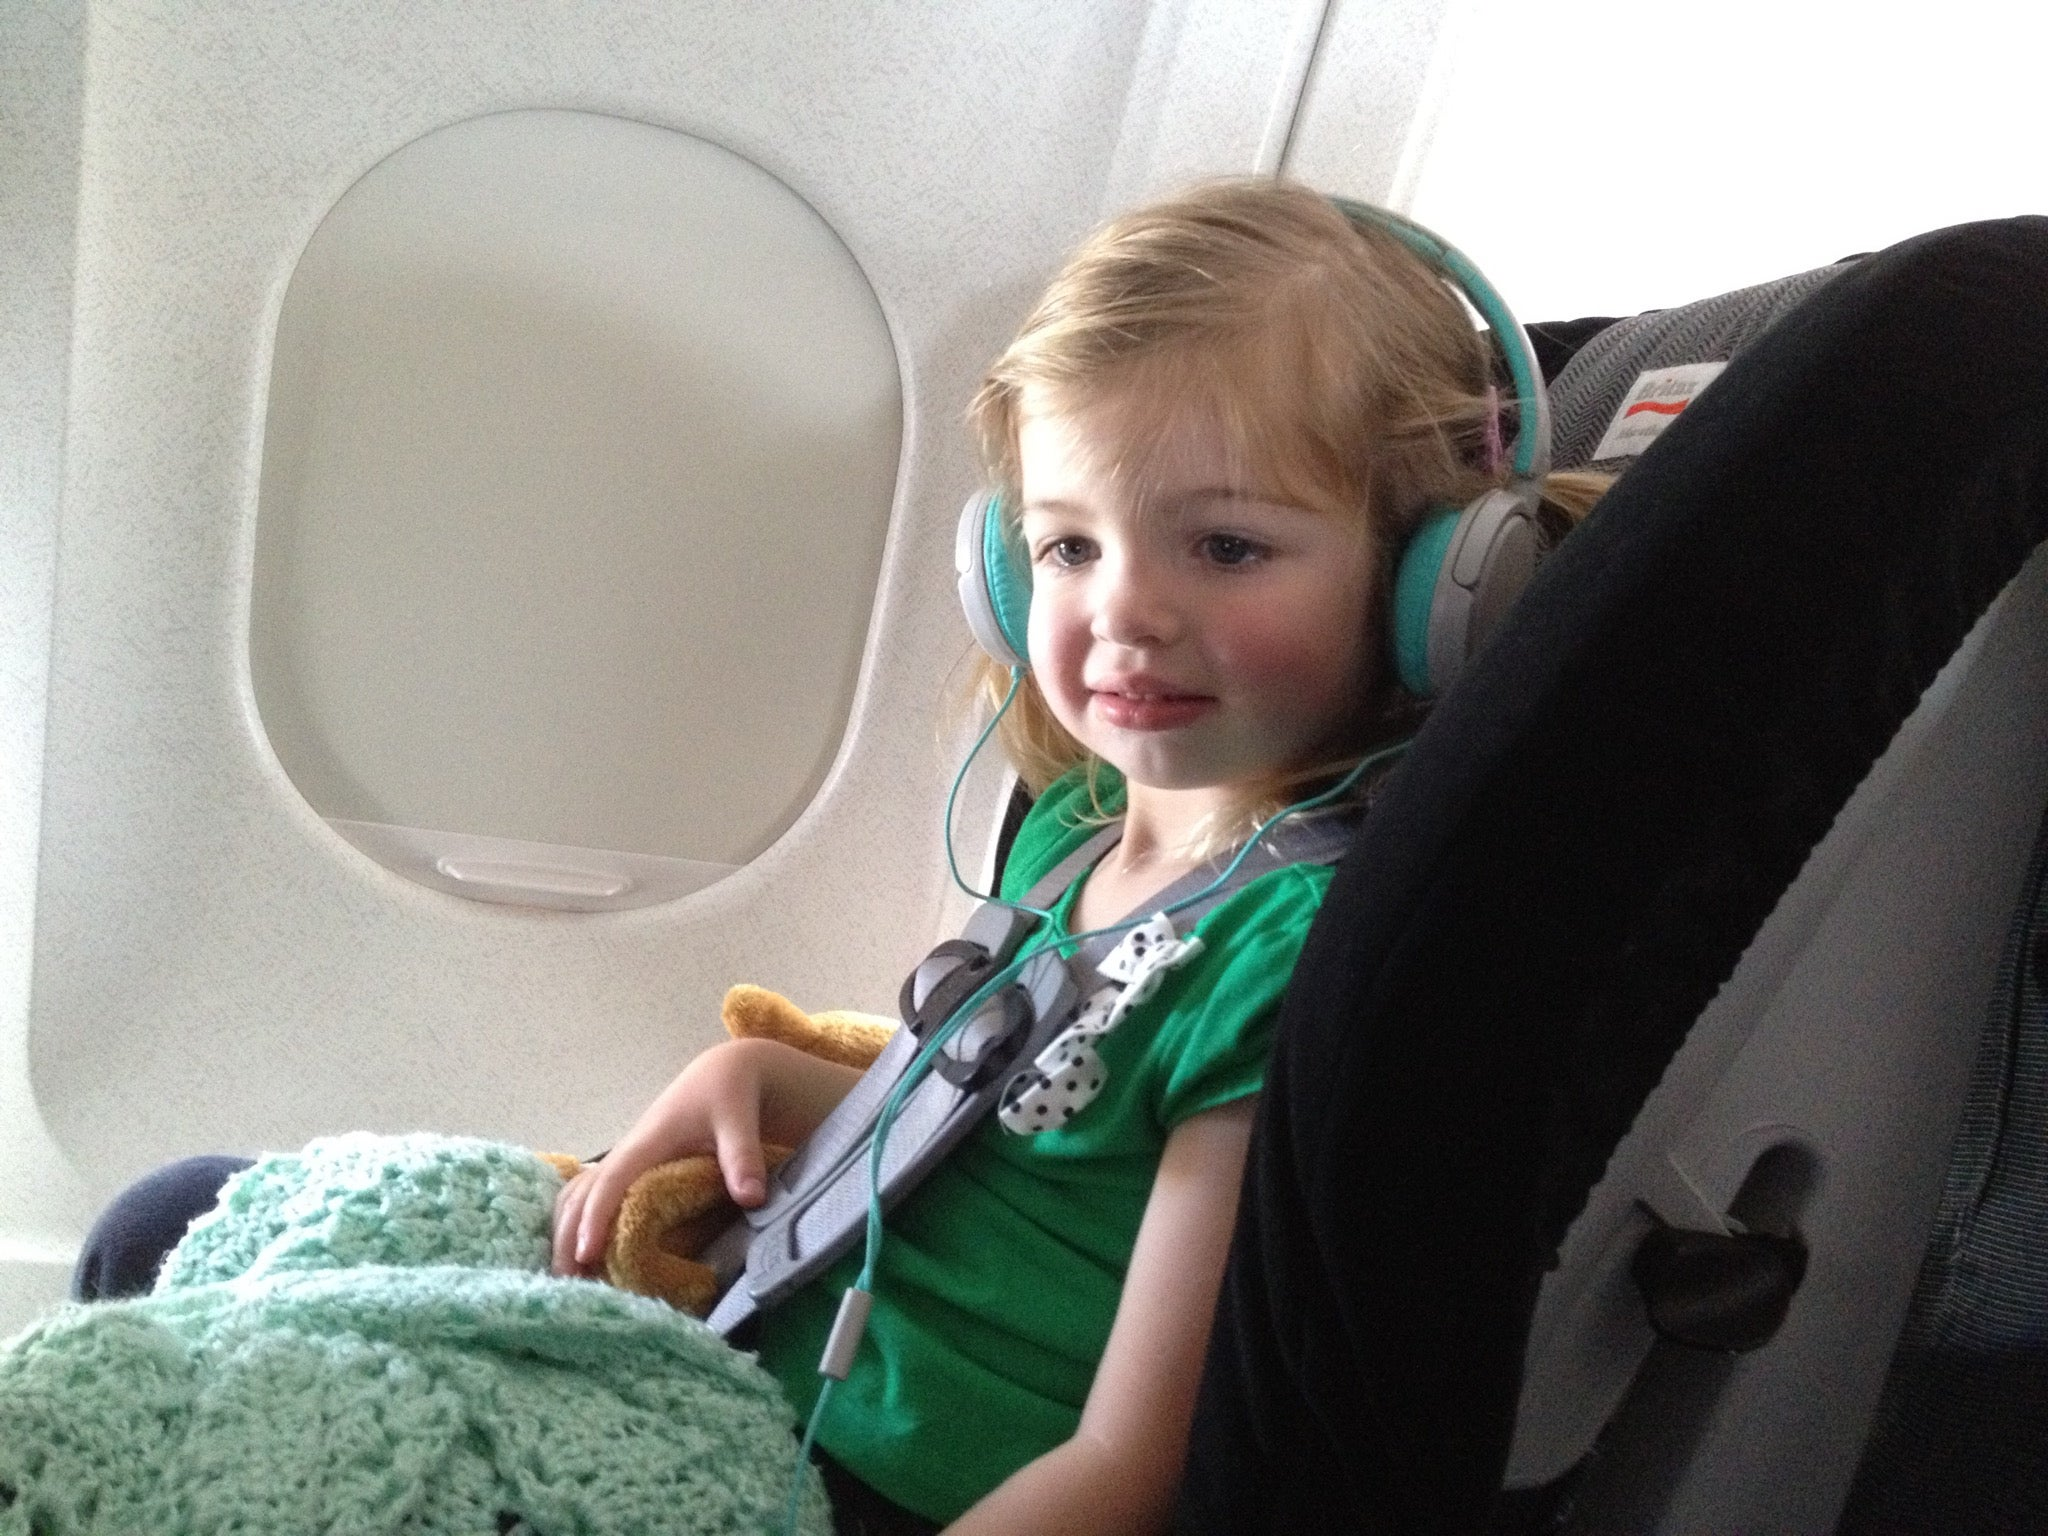 Flying With Our Big Britax Car Seat